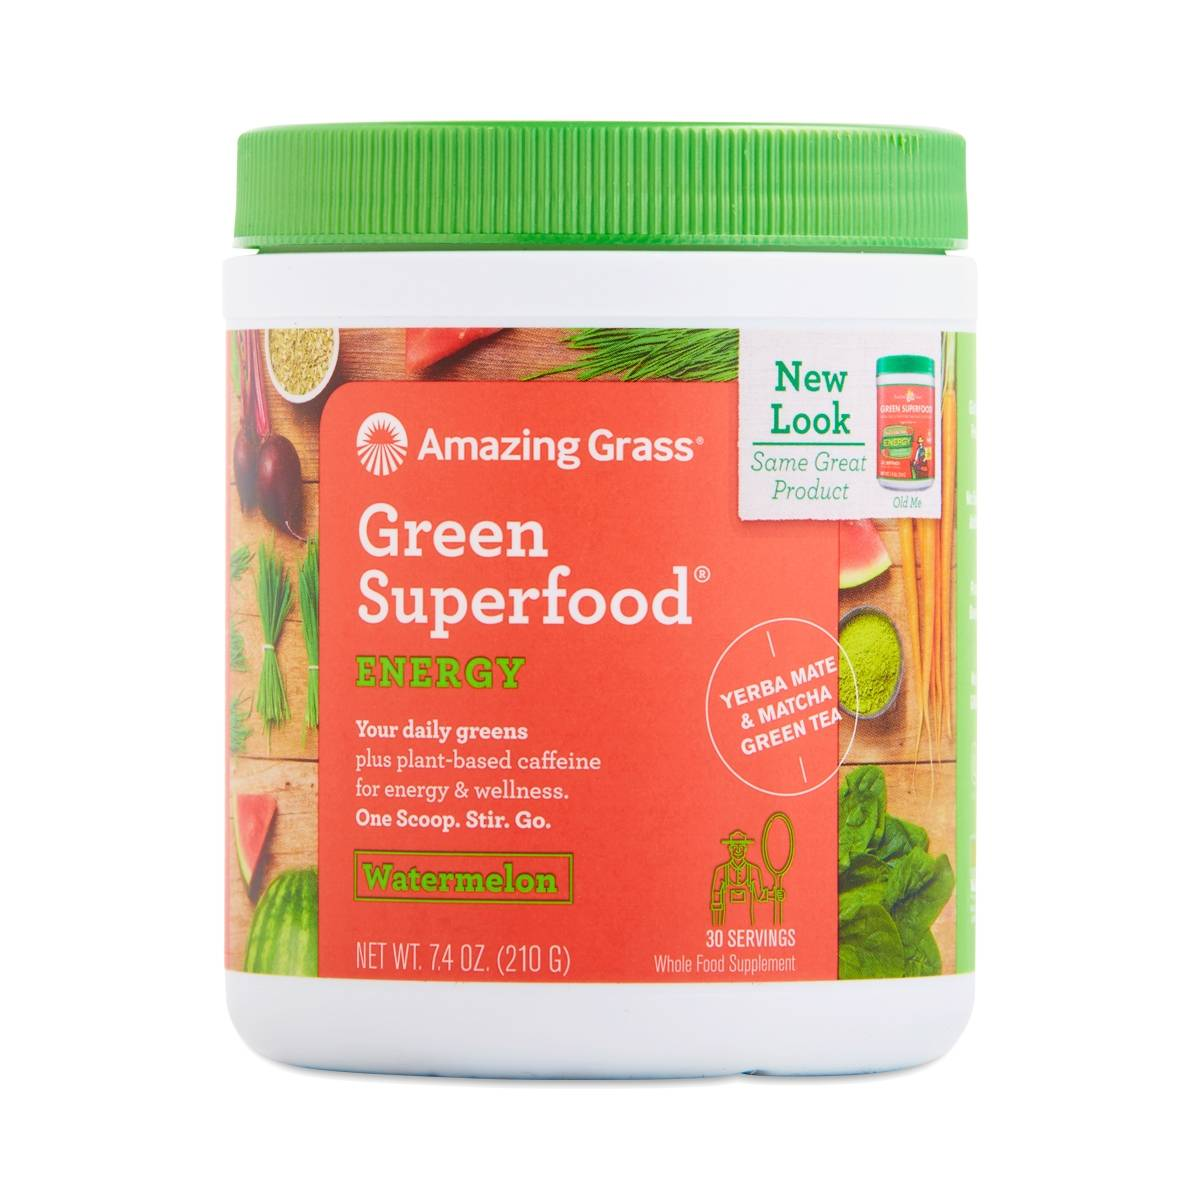 Amazing Grass Green Superfood Powder Energy Watermelon